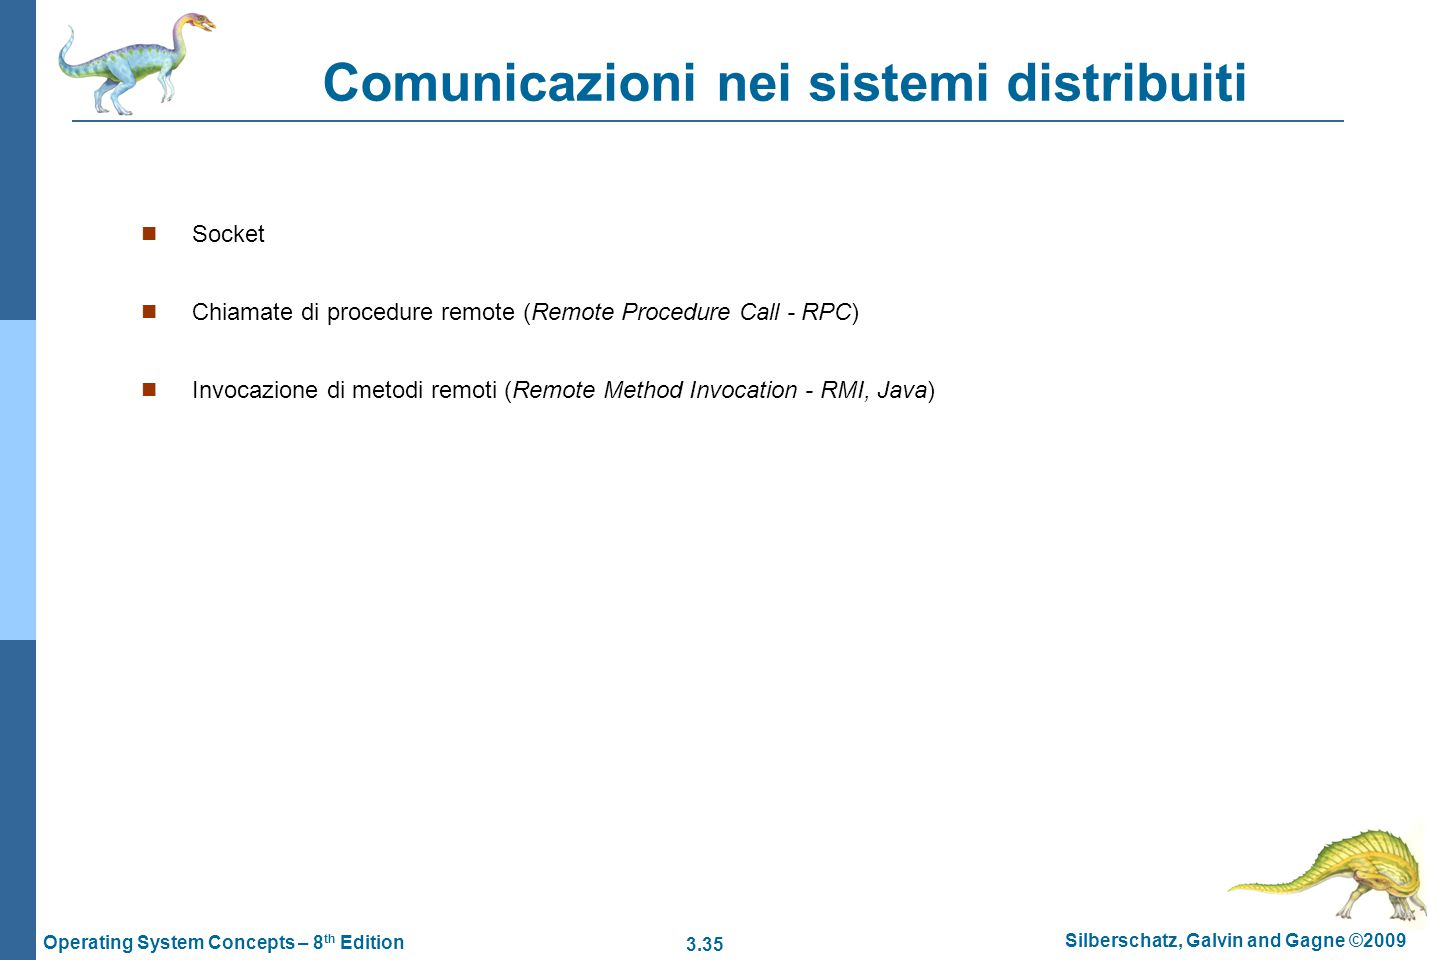 3.35 Silberschatz, Galvin and Gagne ©2009 Operating System Concepts – 8 th Edition Comunicazioni nei sistemi distribuiti Socket Chiamate di procedure remote (Remote Procedure Call - RPC) Invocazione di metodi remoti (Remote Method Invocation - RMI, Java)